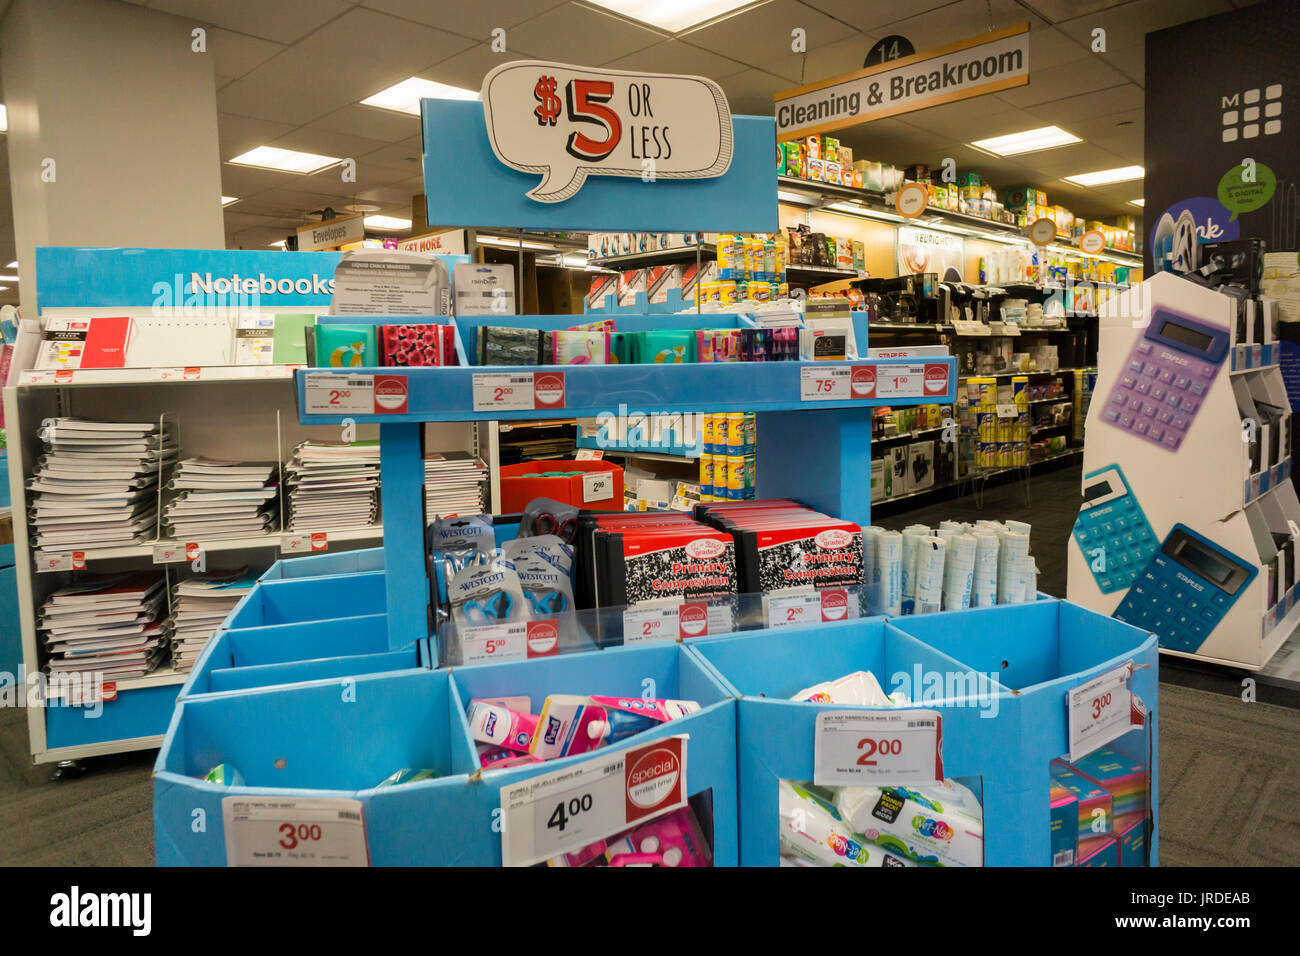 a49f517c0c Staples Store In New York Photos & Staples Store In New York Images ...